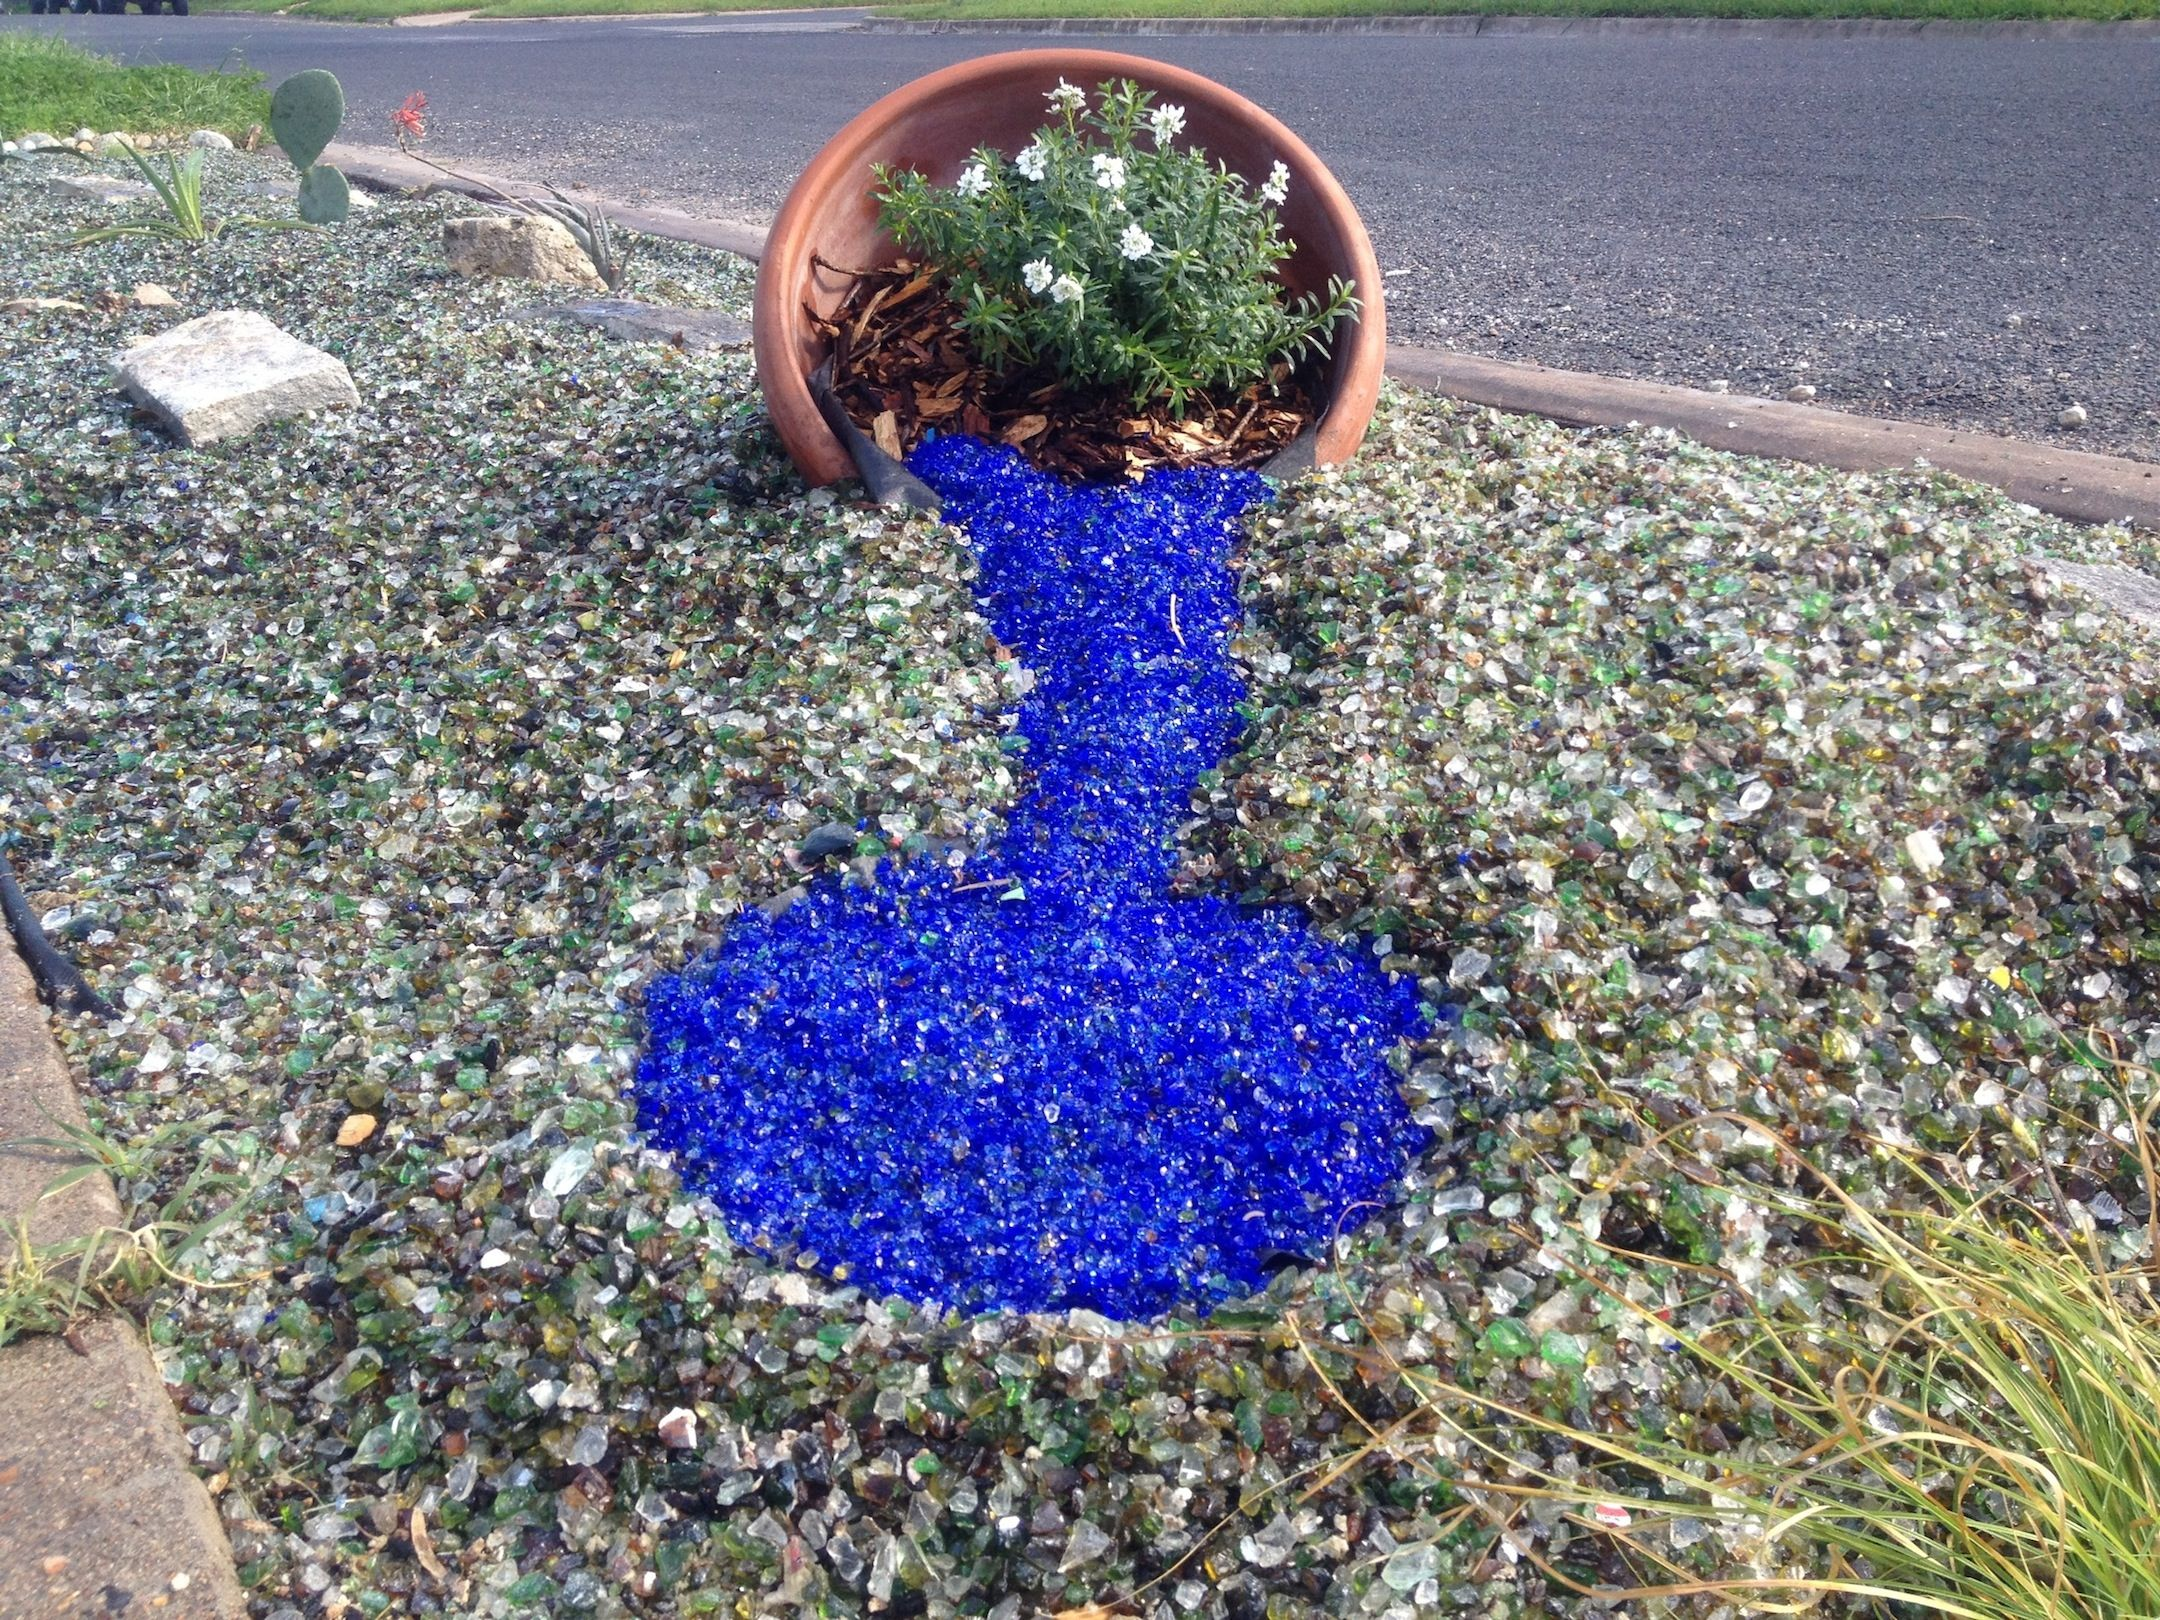 Blue recycled glass landscape glass mulch landscape for Recycled garden ideas pinterest